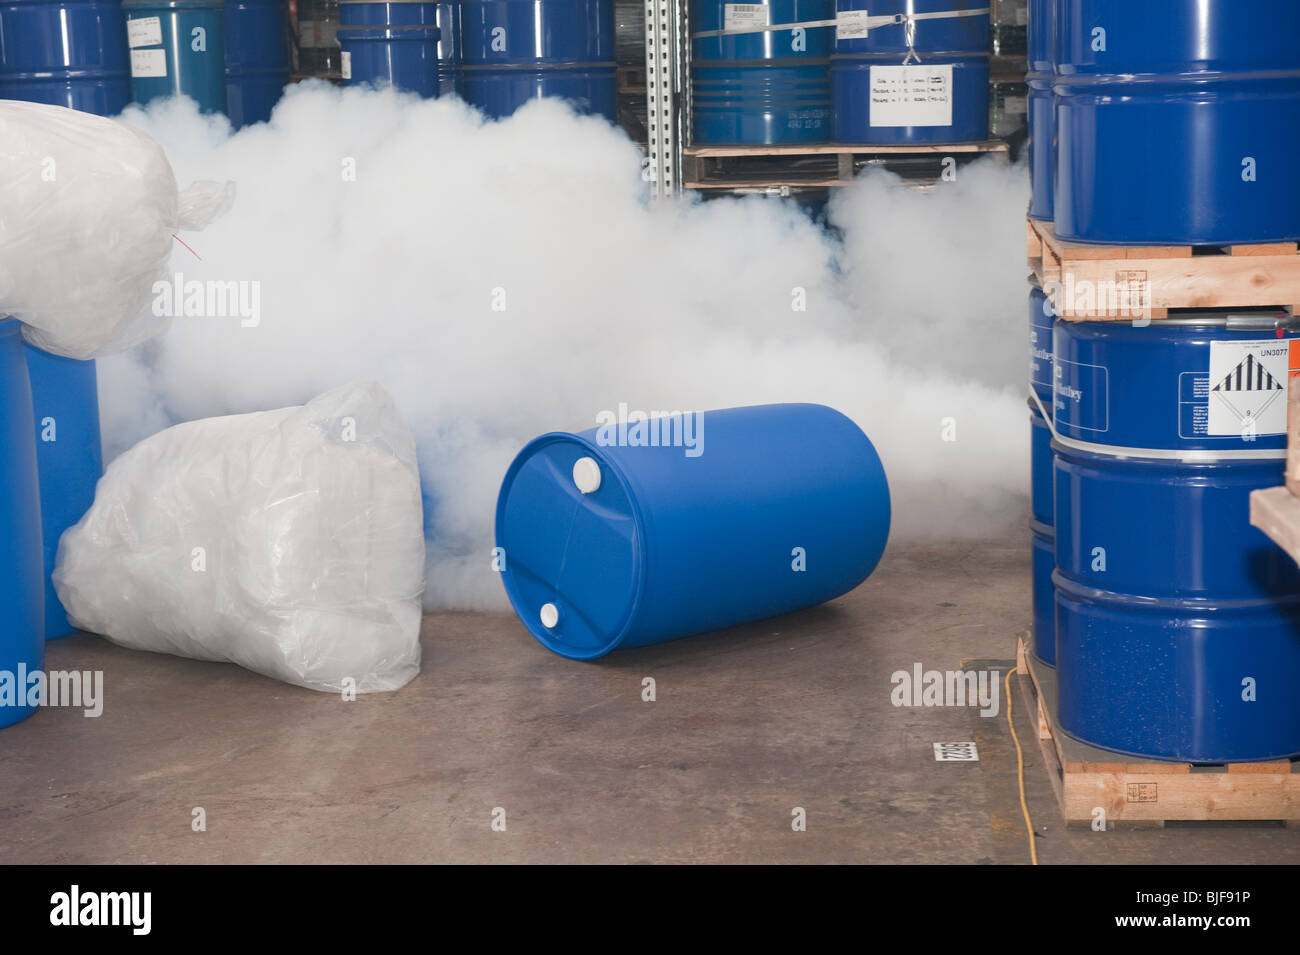 Chemical drum spillage and poisonous gas leak - Stock Image